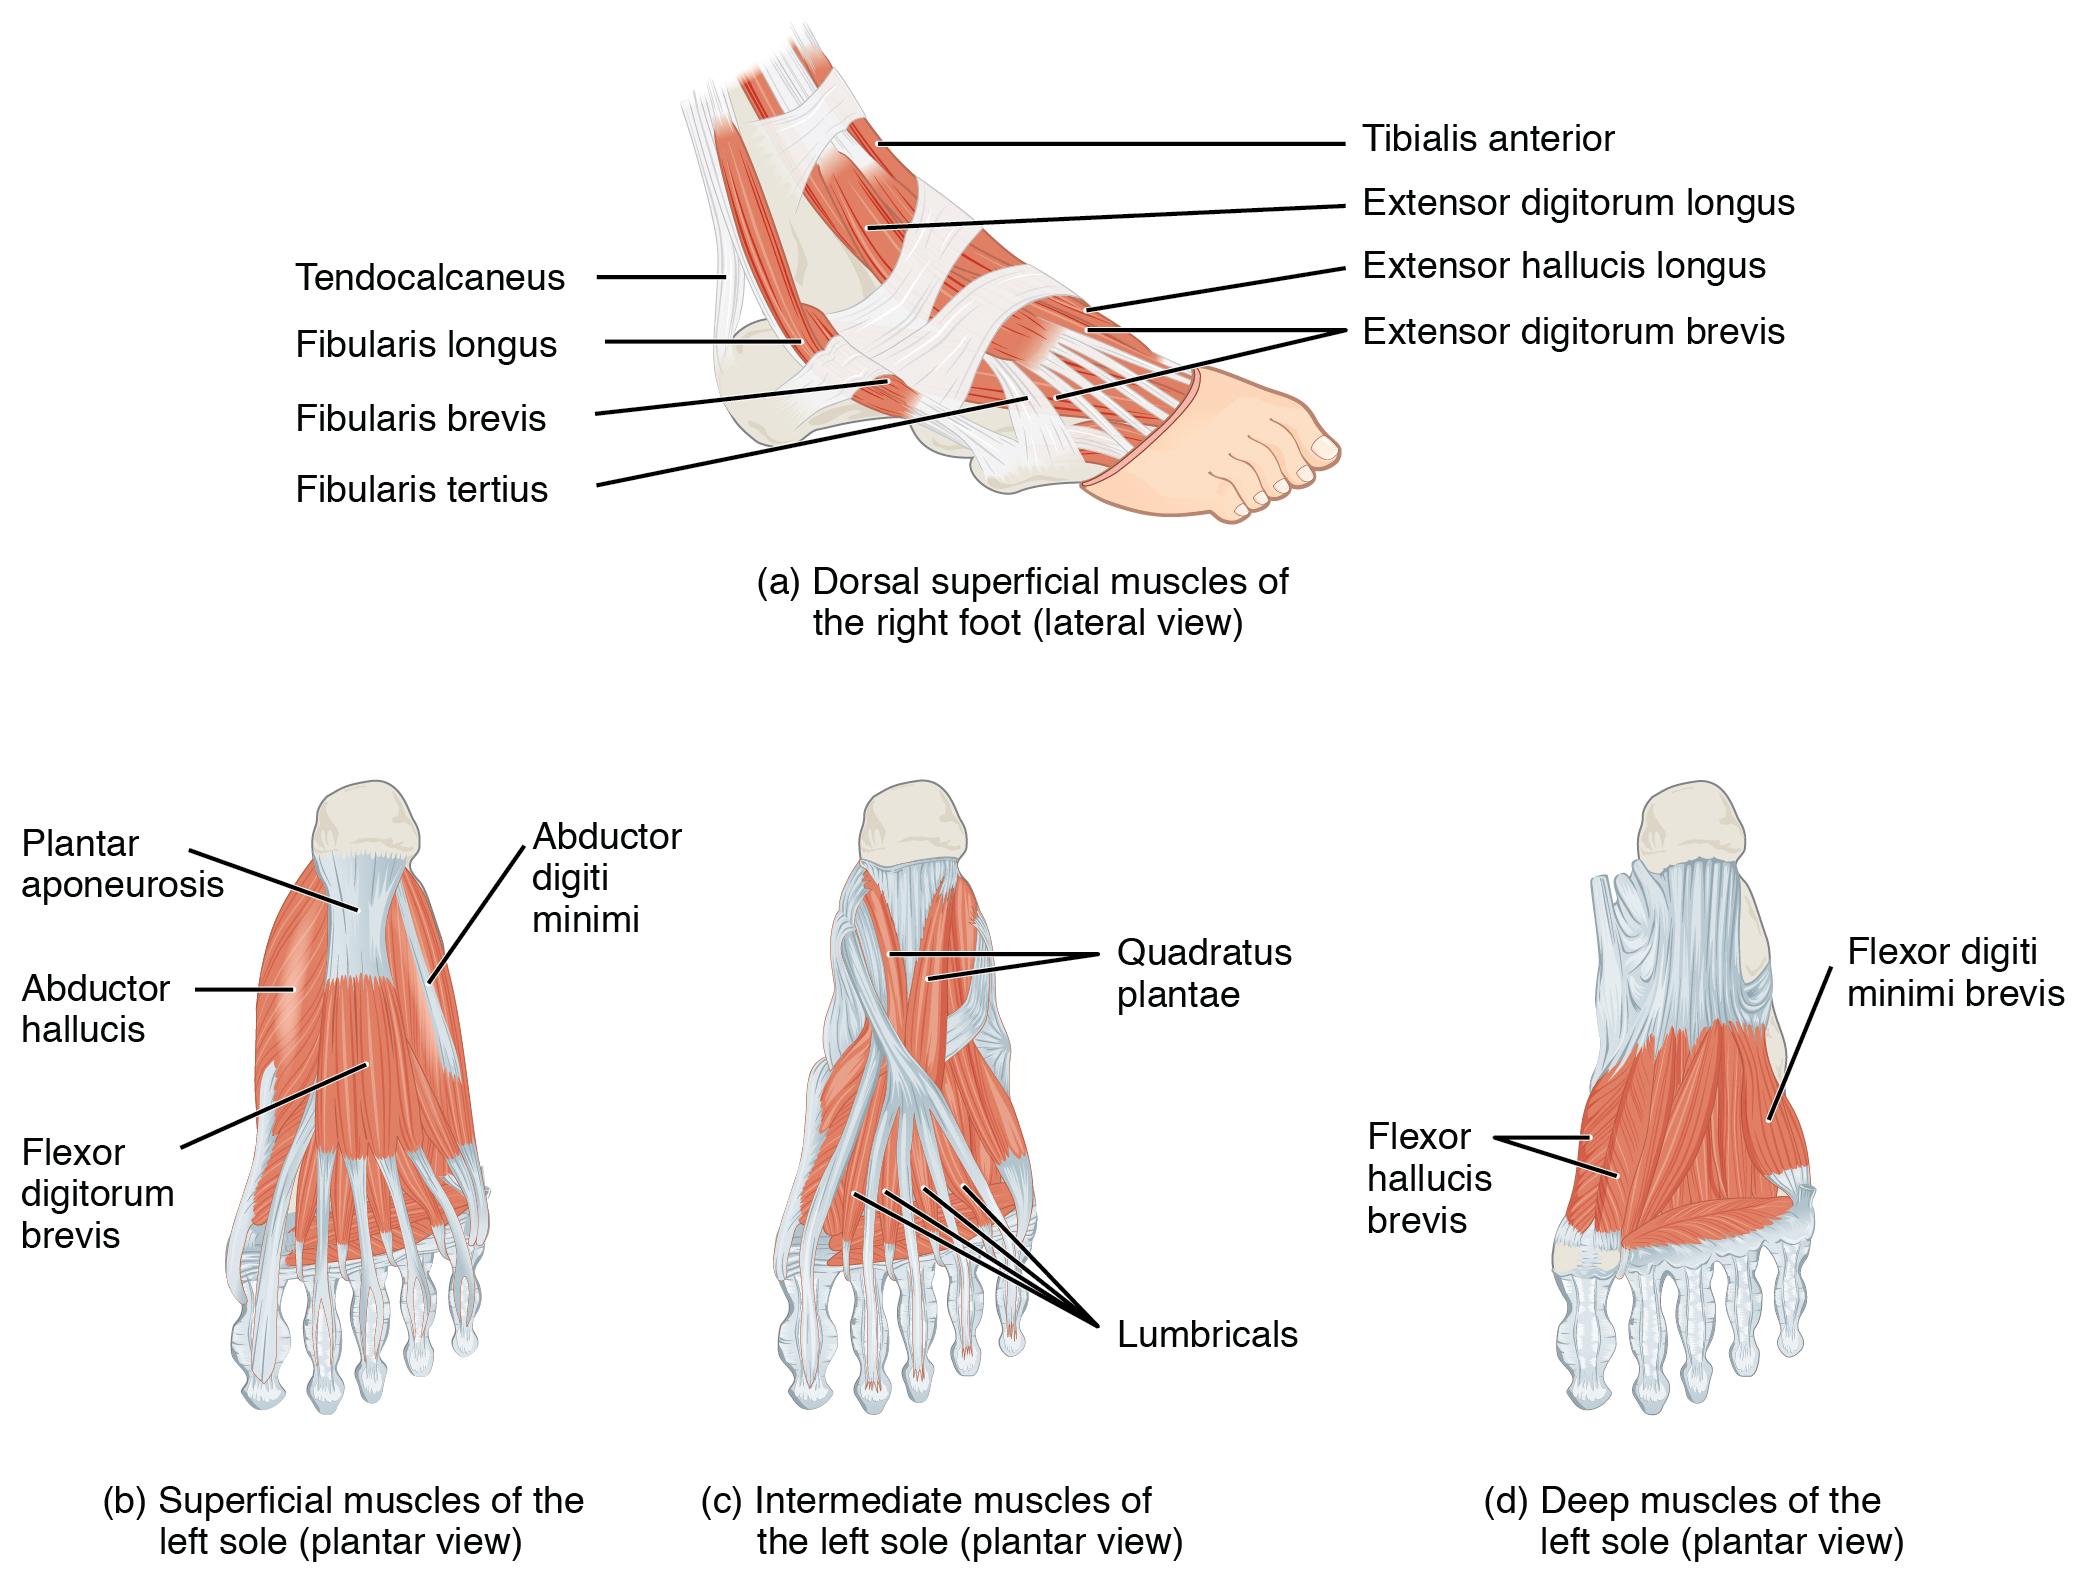 Chapter Review Appendicular Muscles Of The Pelvic Girdle By